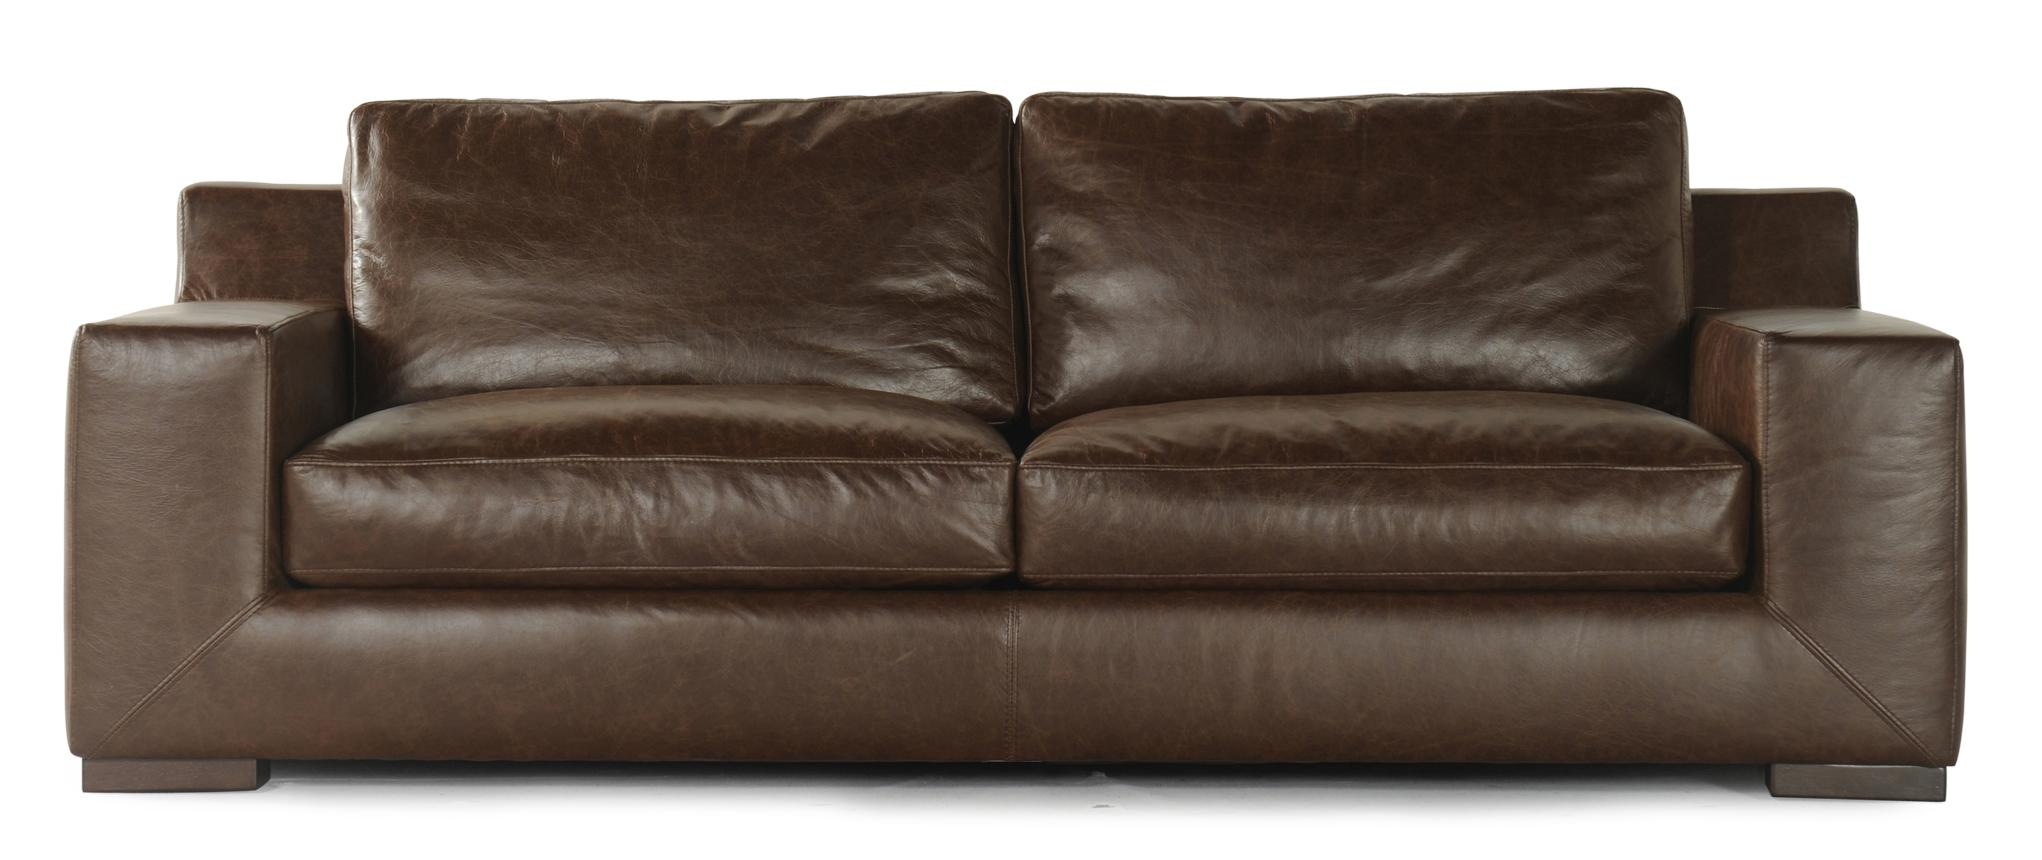 3531 Sofa by Violino at Furniture Superstore - Rochester, MN